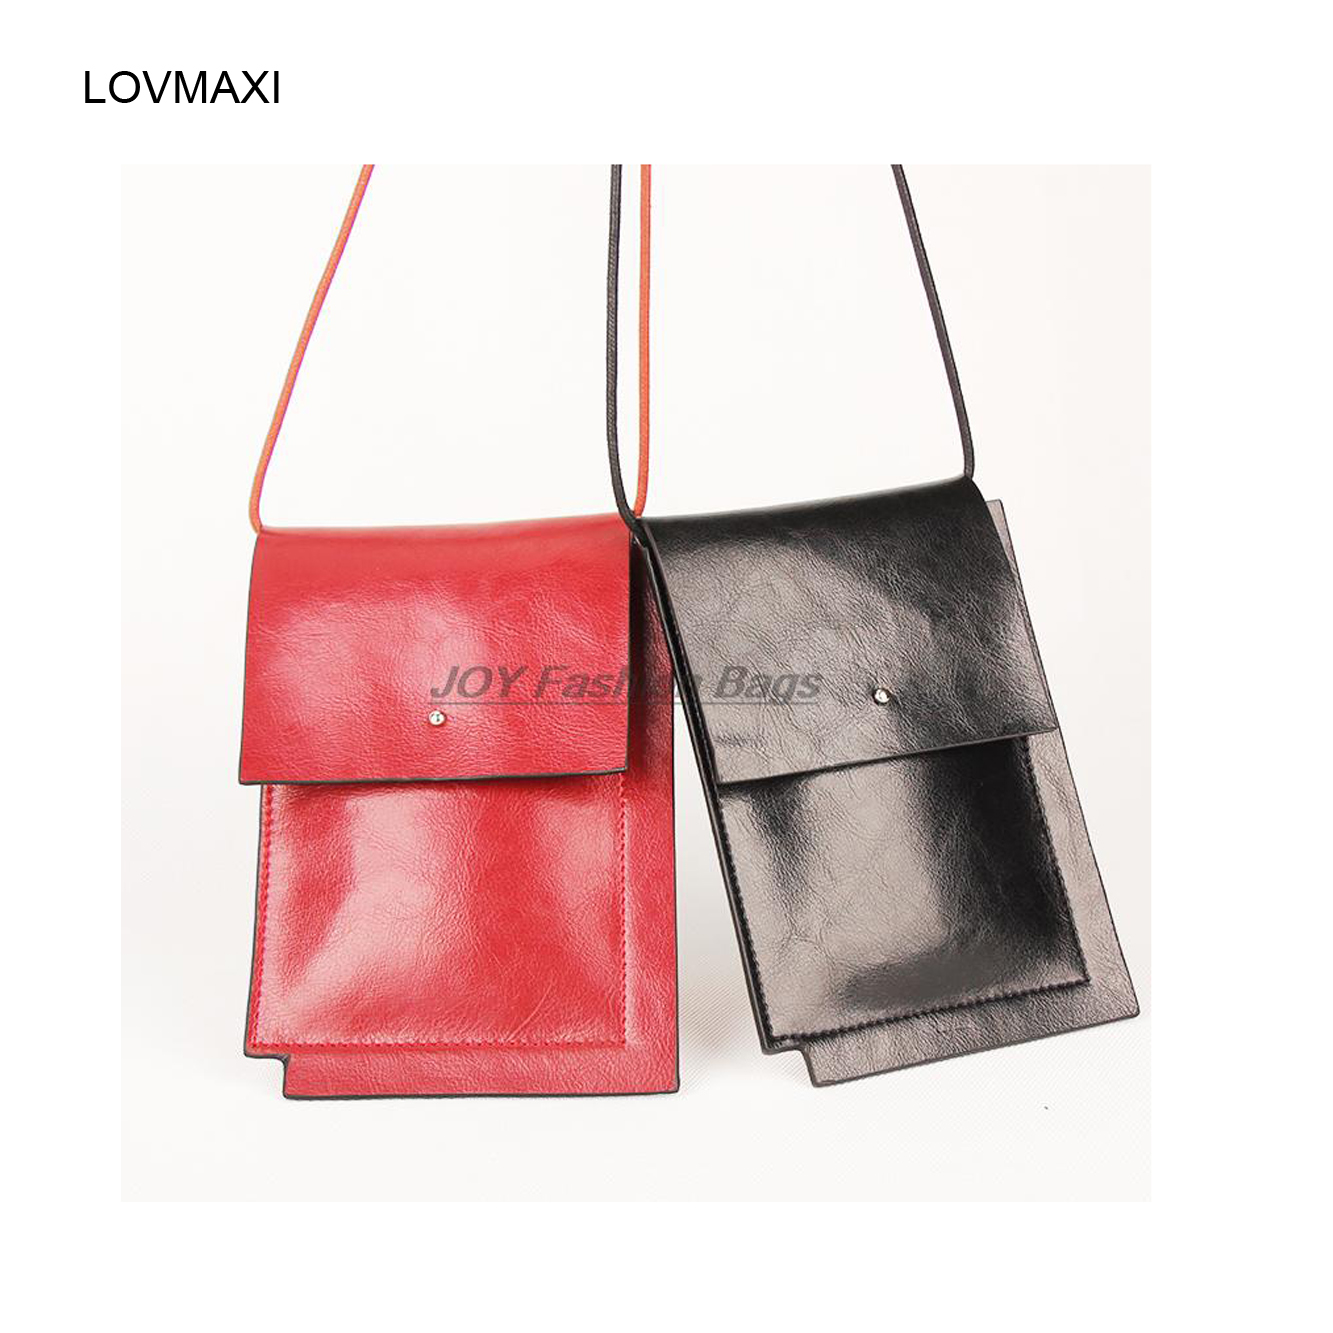 LOVMAXI Women Crossbody Bags  Cowhide Leather Mini Messenger Bags Genuine Leather Women's Small Shoulder Bags Lady handbag 2017 fashion all match retro split leather women bag top grade small shoulder bags multilayer mini chain women messenger bags